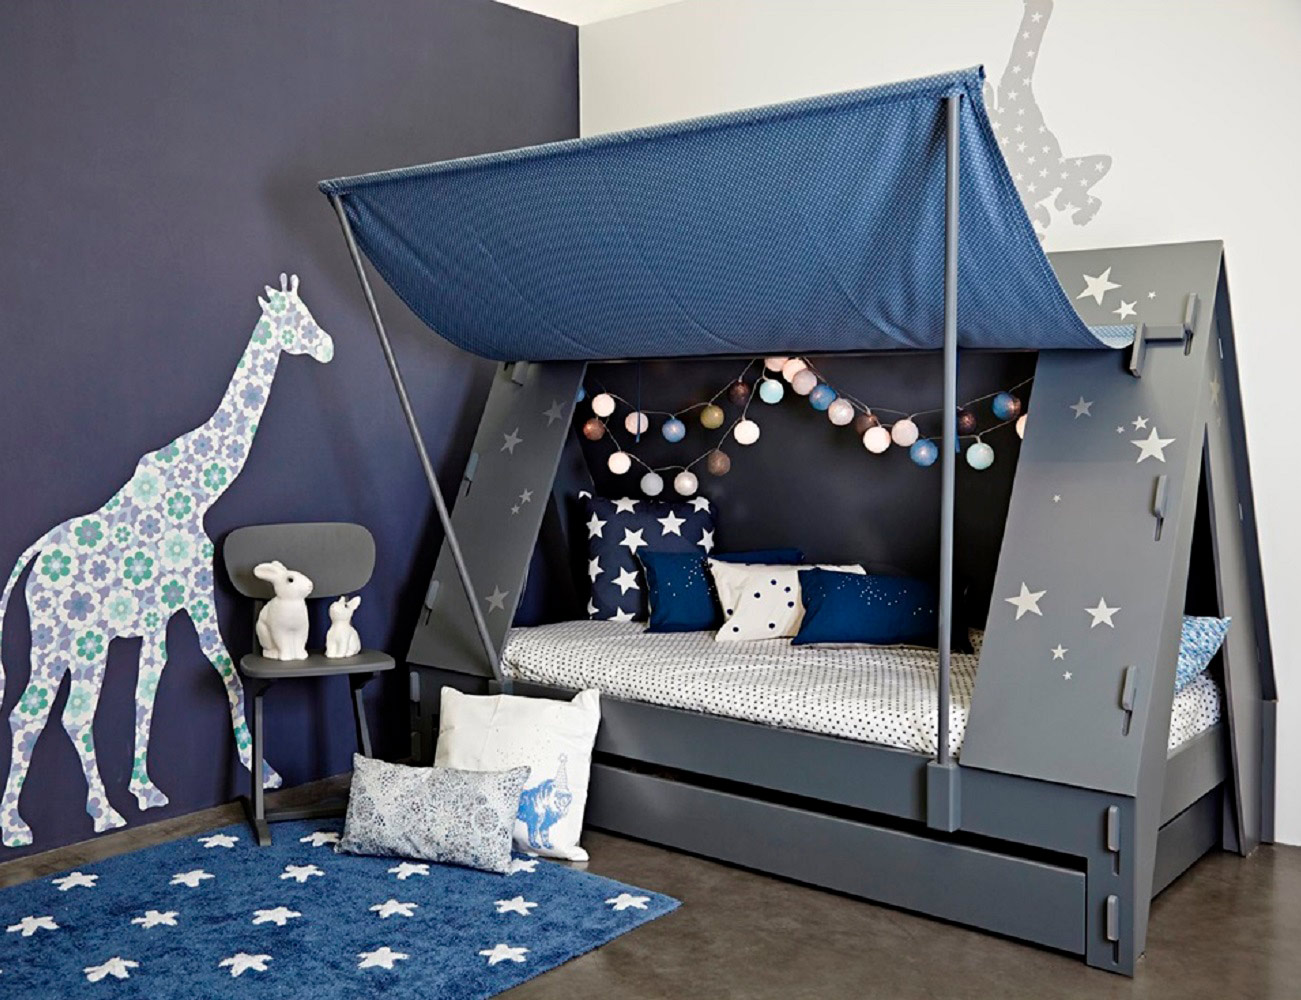 Kids Tent Cabin Canopy Bed 187 Gadget Flow